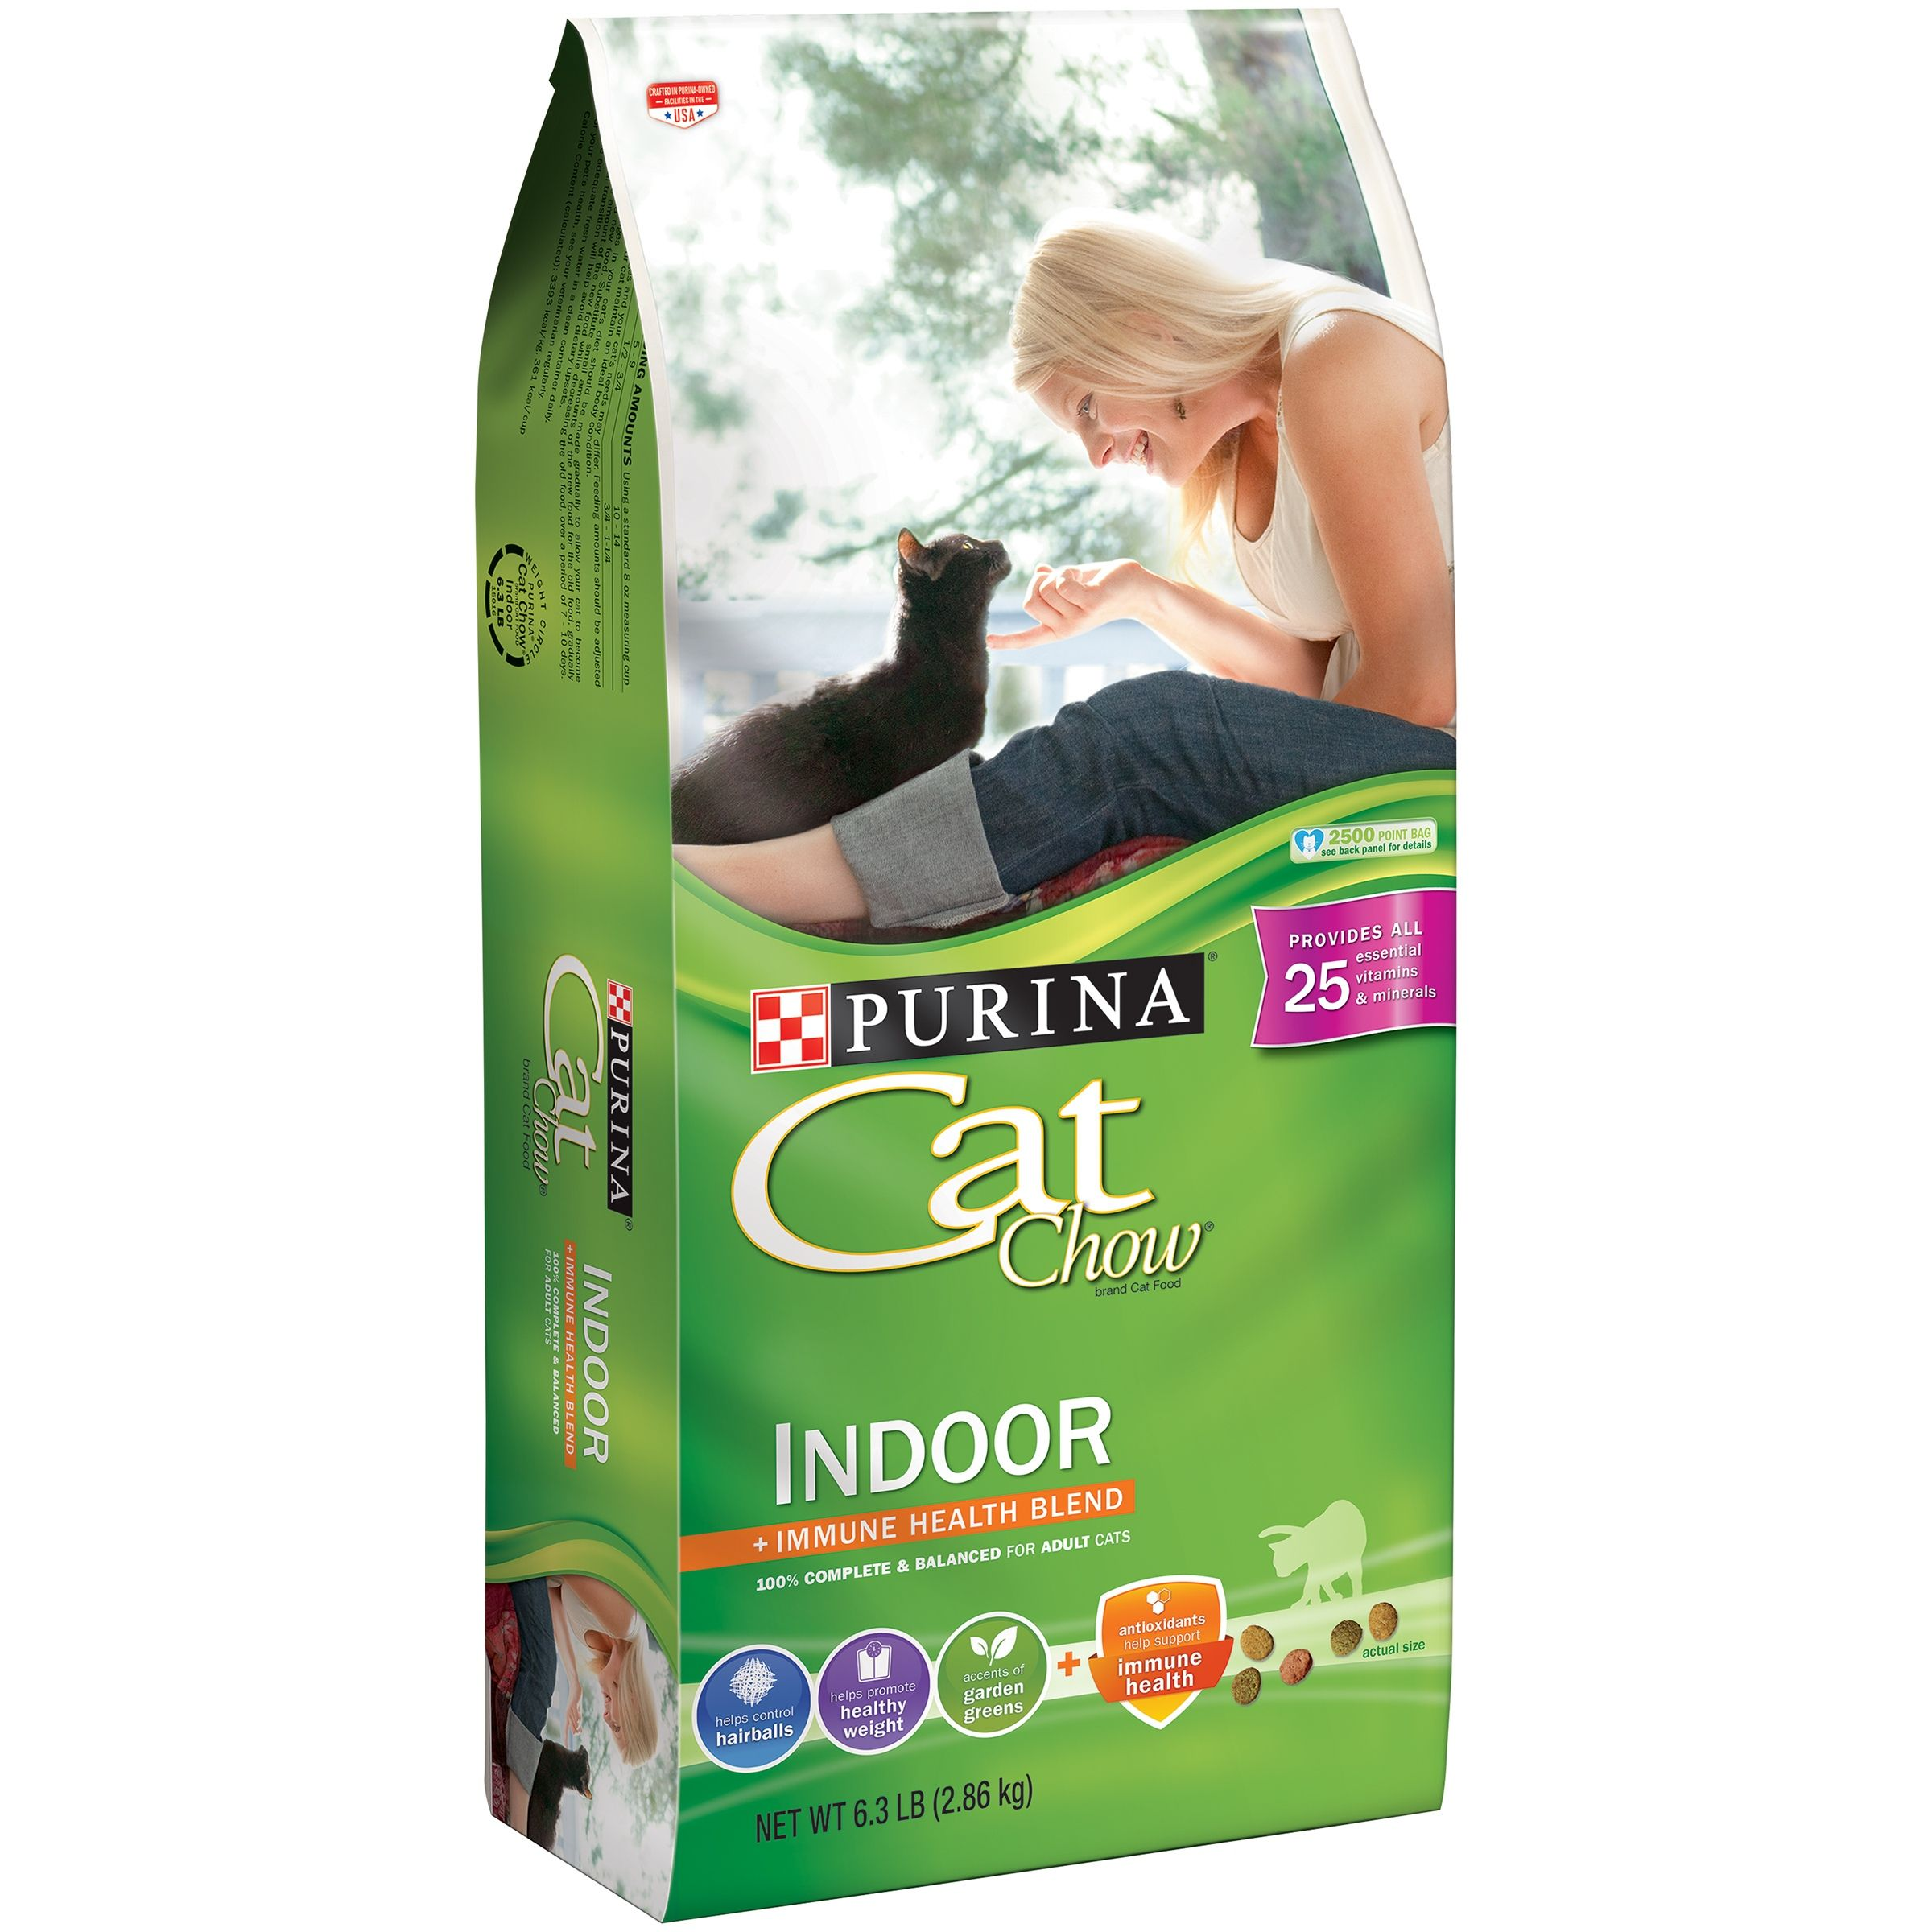 Purina Cat Chow Indoor Adult Dry Cat Food 22 Lb Ad Chow Ad